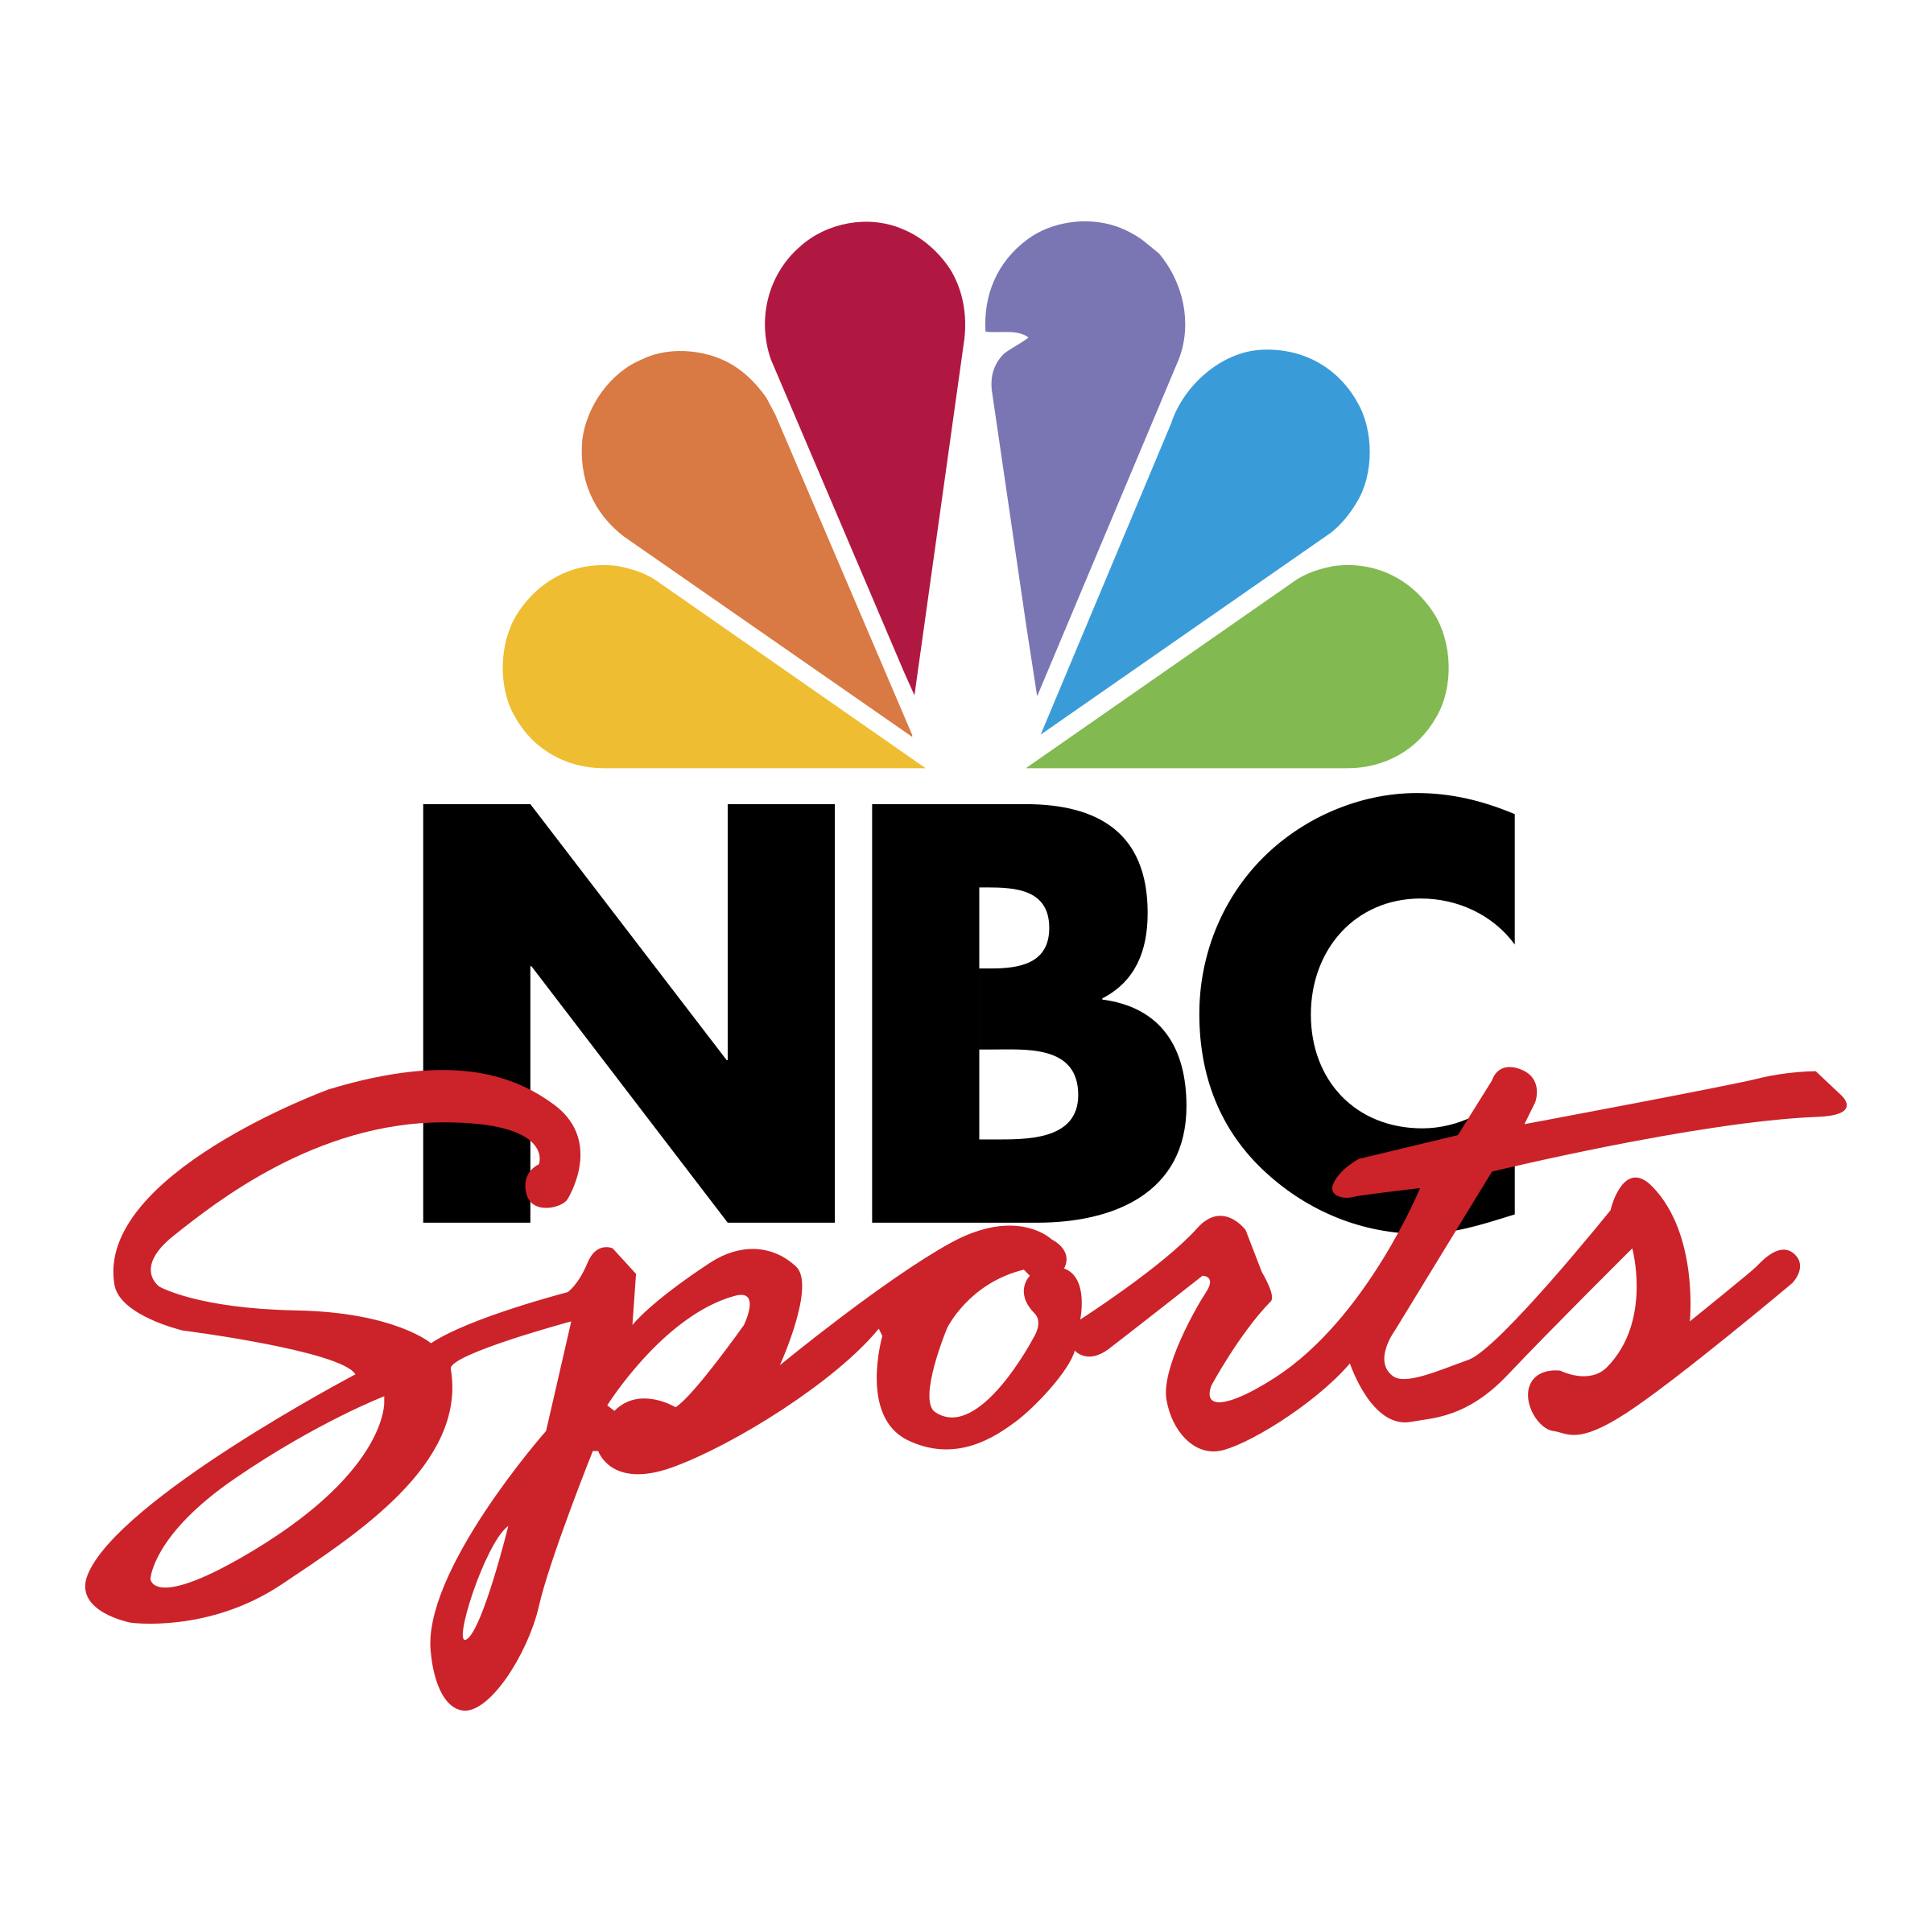 nbc-sports-logo-png-transparent